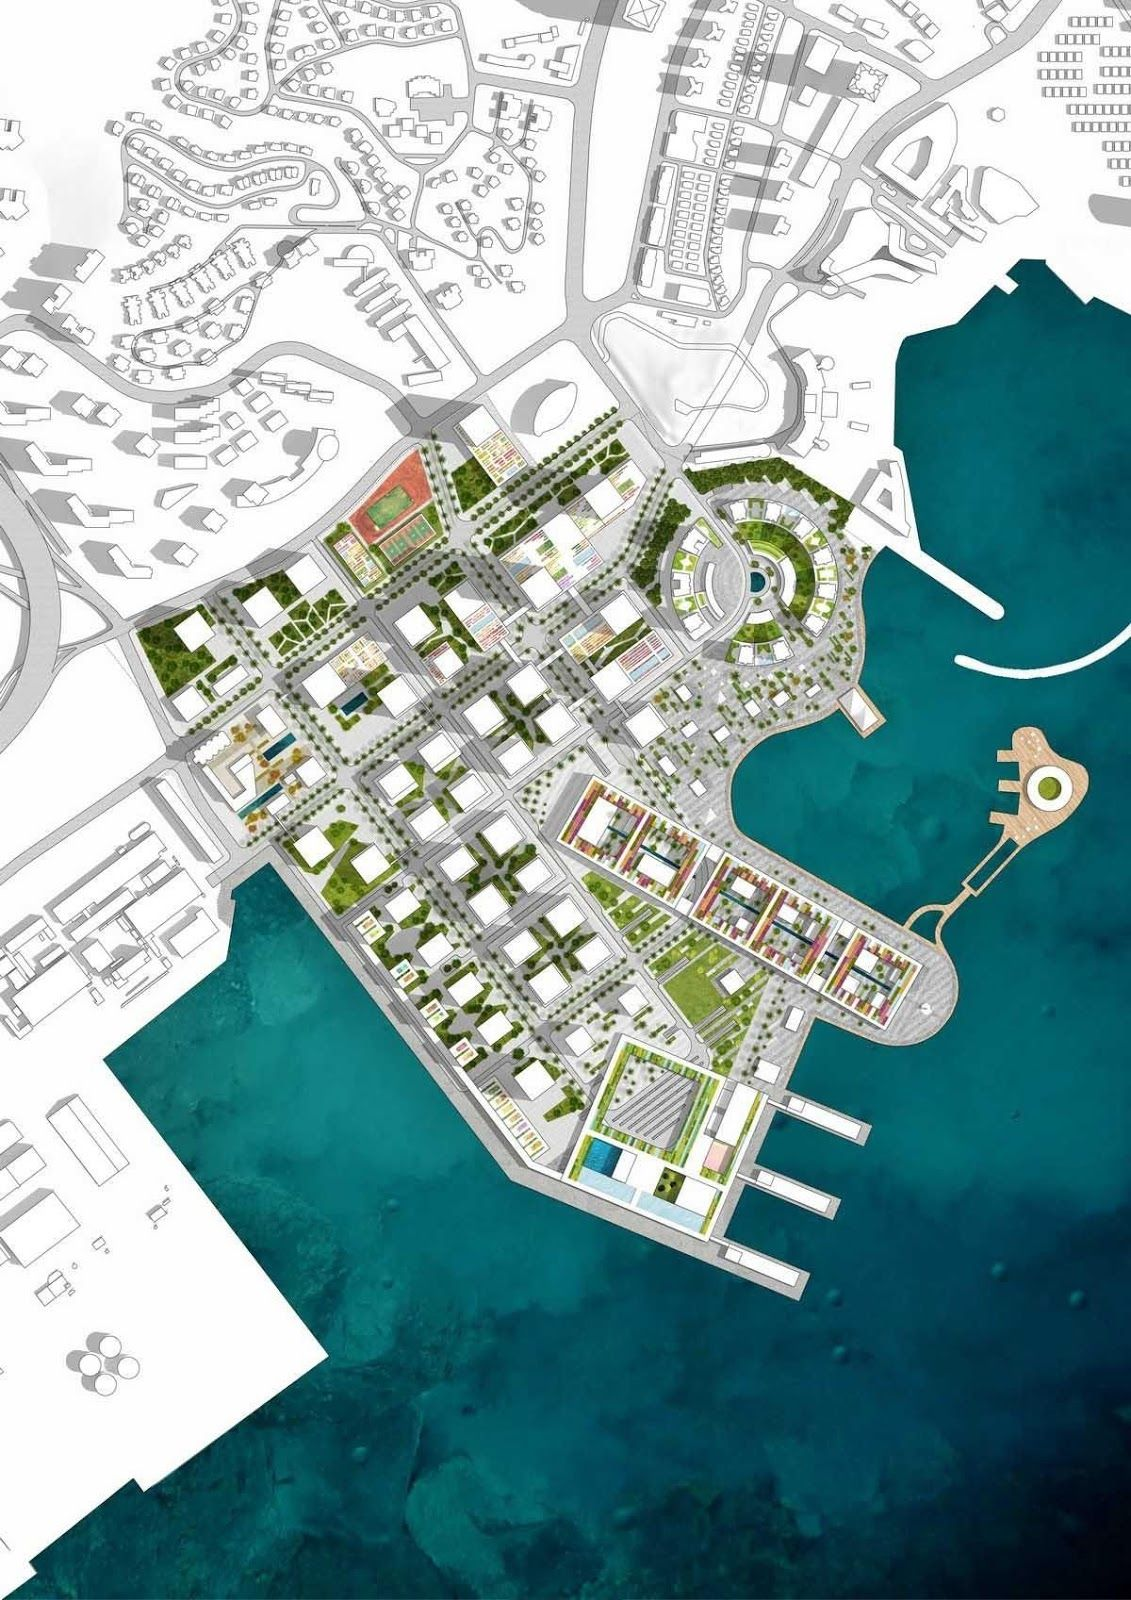 Prince Bay . Shenzhen    OMA . + pgive   Located in Shenzhen, Shekou was one of the pilot development areas during the first wave of China's...